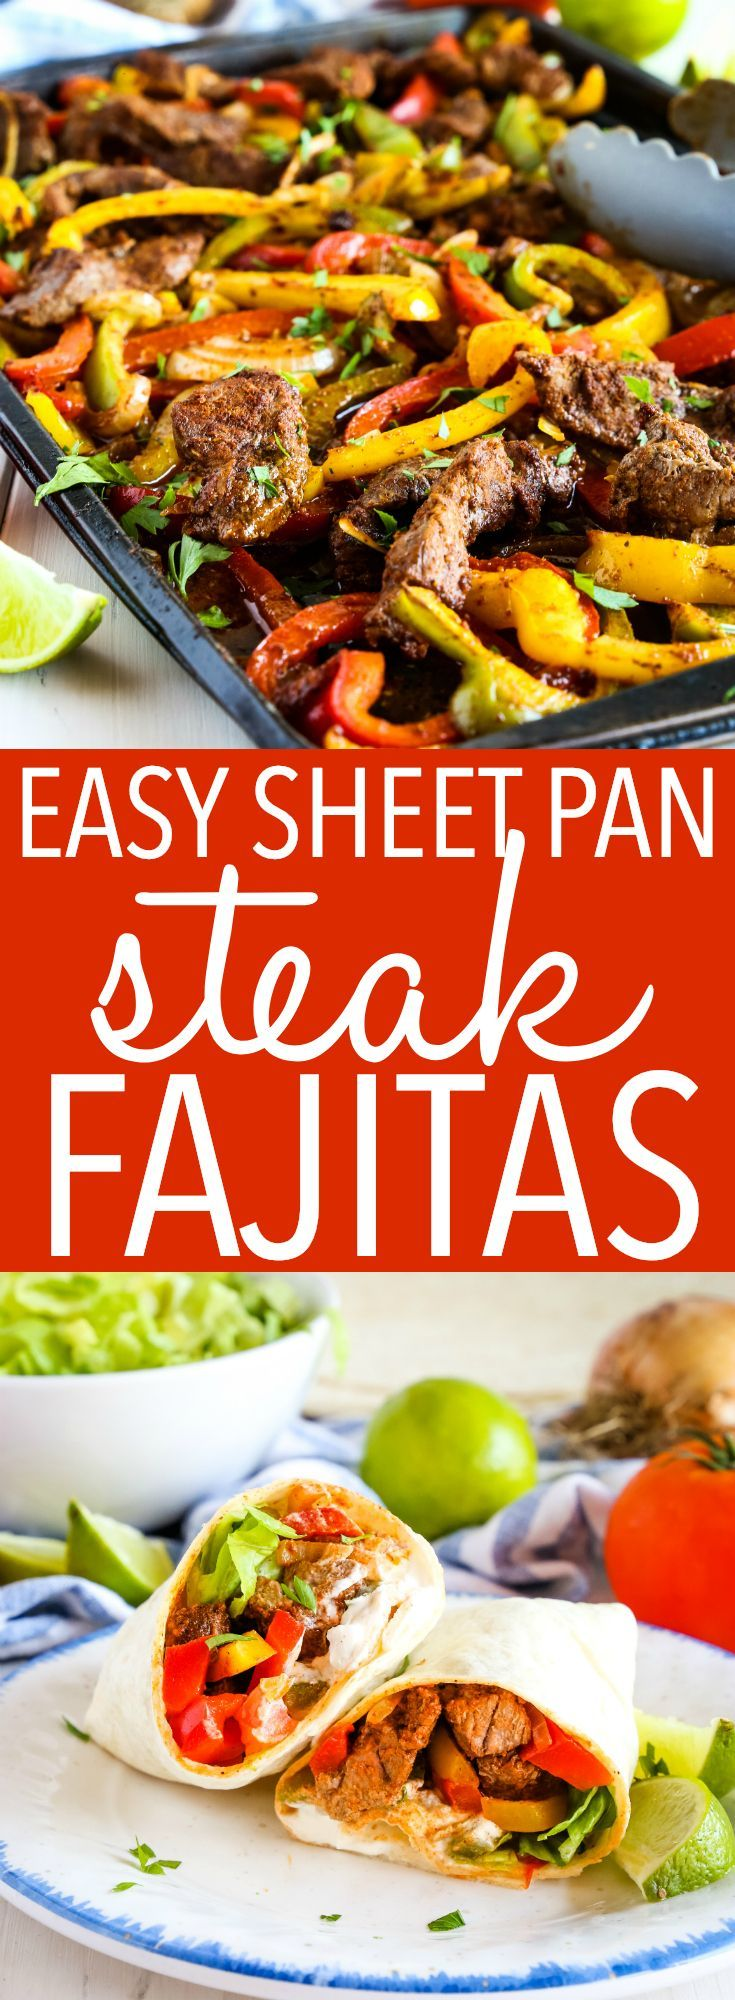 Easy Sheet Pan Steak Fajitas images